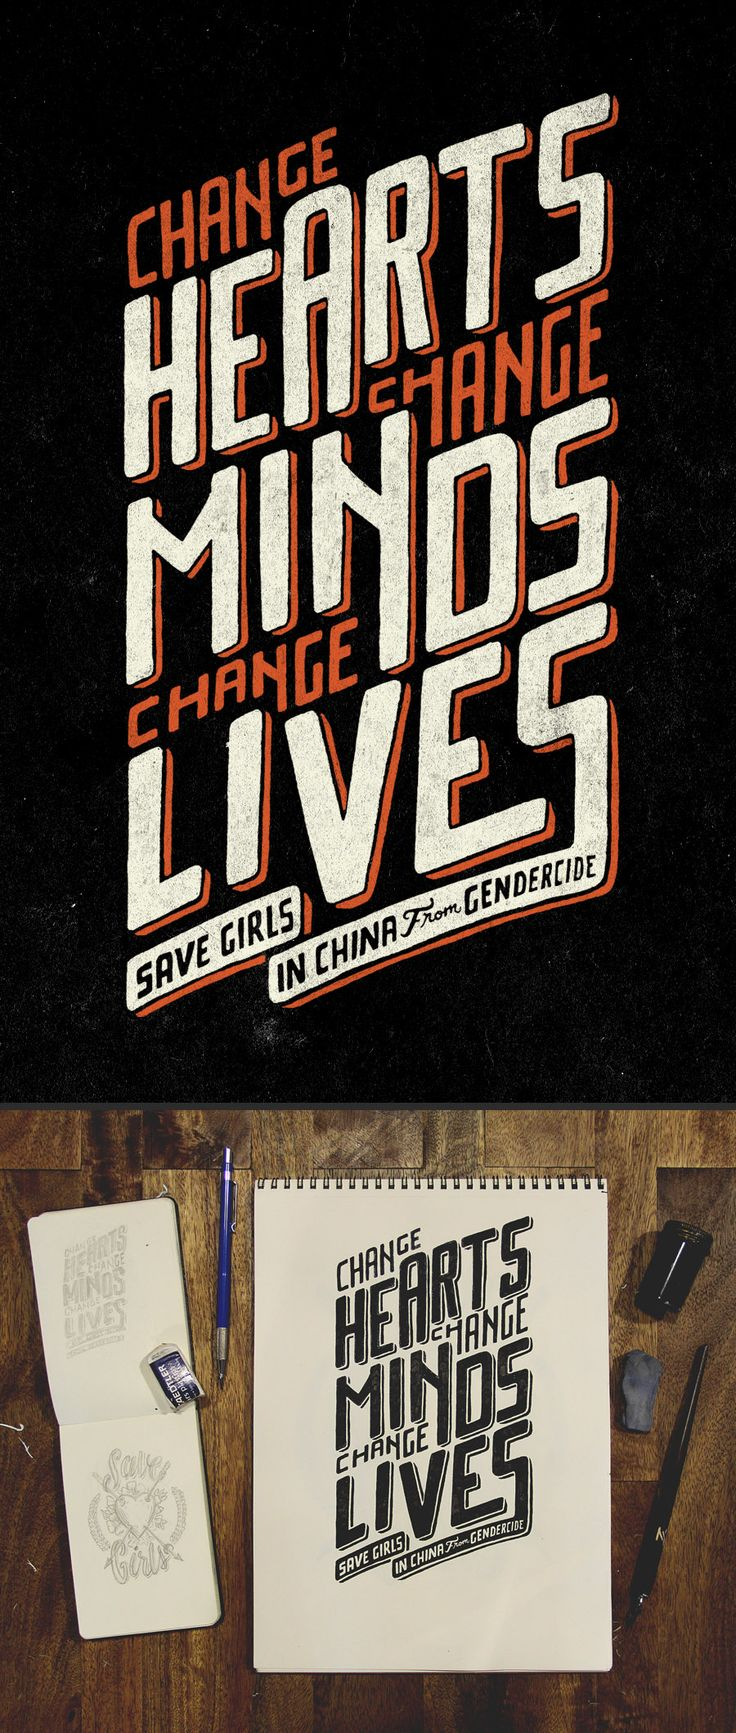 Mysterious poster design with 3d text - Change Hearts By Nathan Yoder